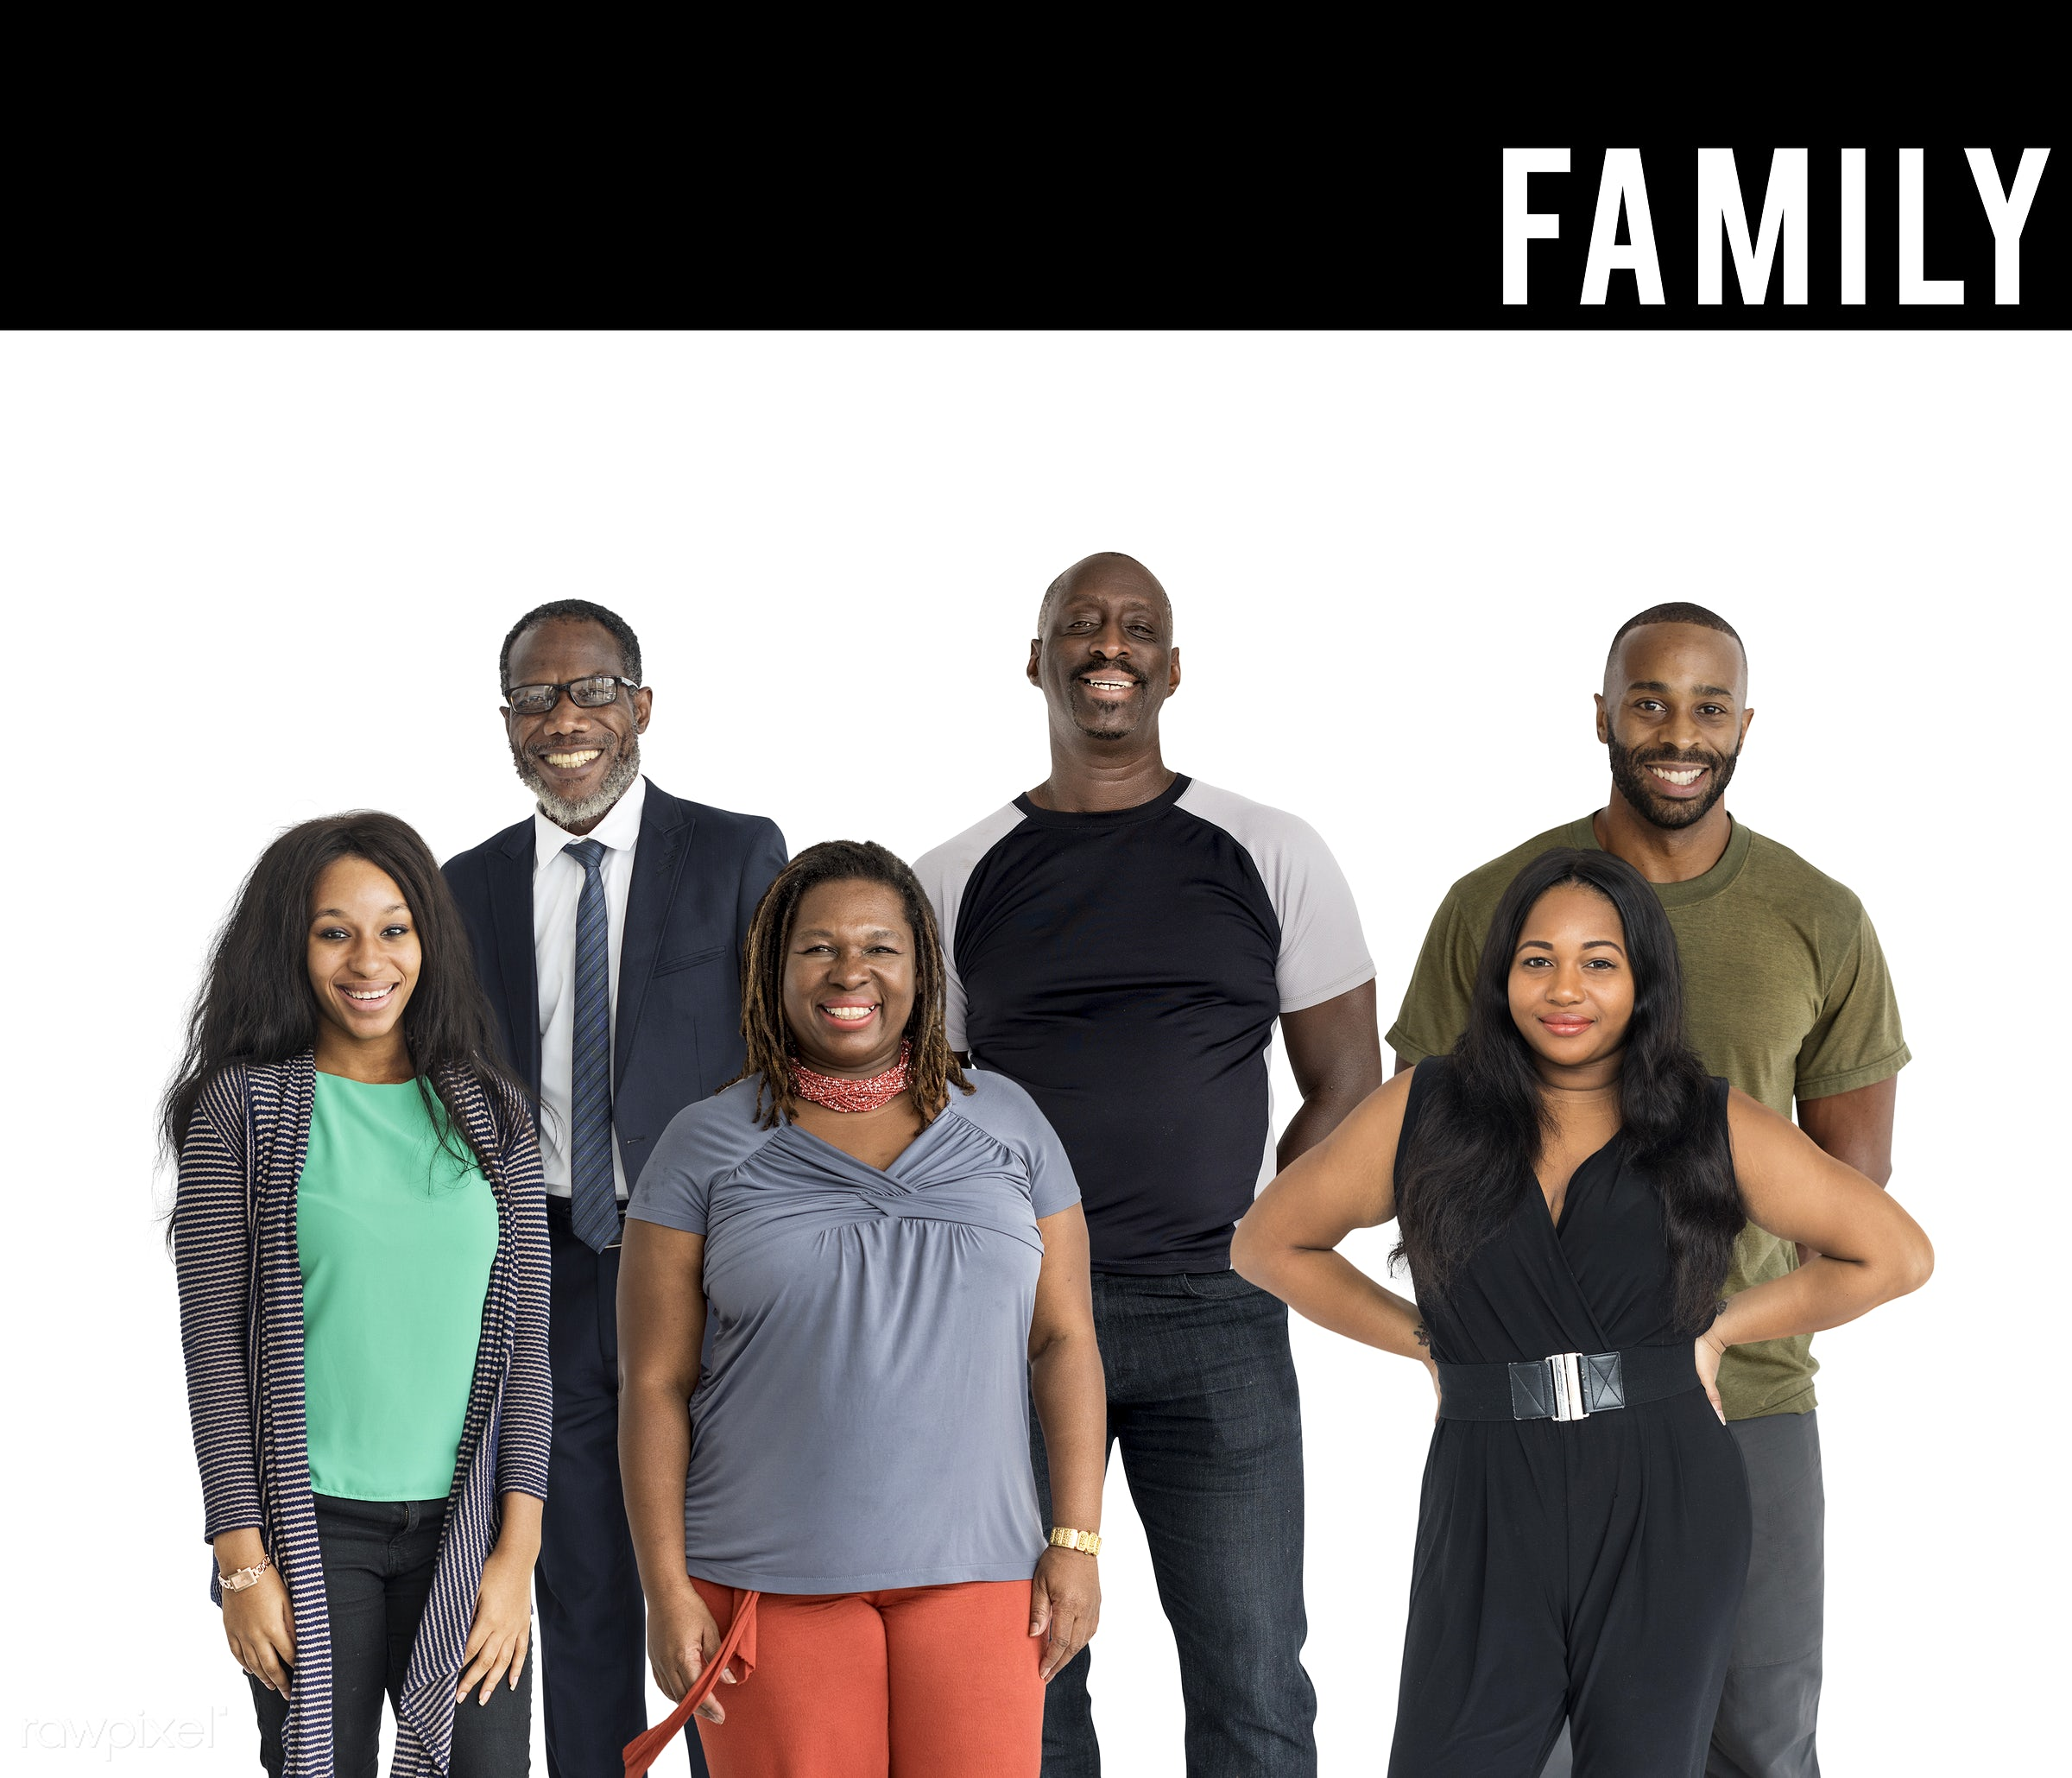 parents, african, daughter, together, love, girl, happy, family, american, woman, lifestyle, casual, studio squareset, men,...